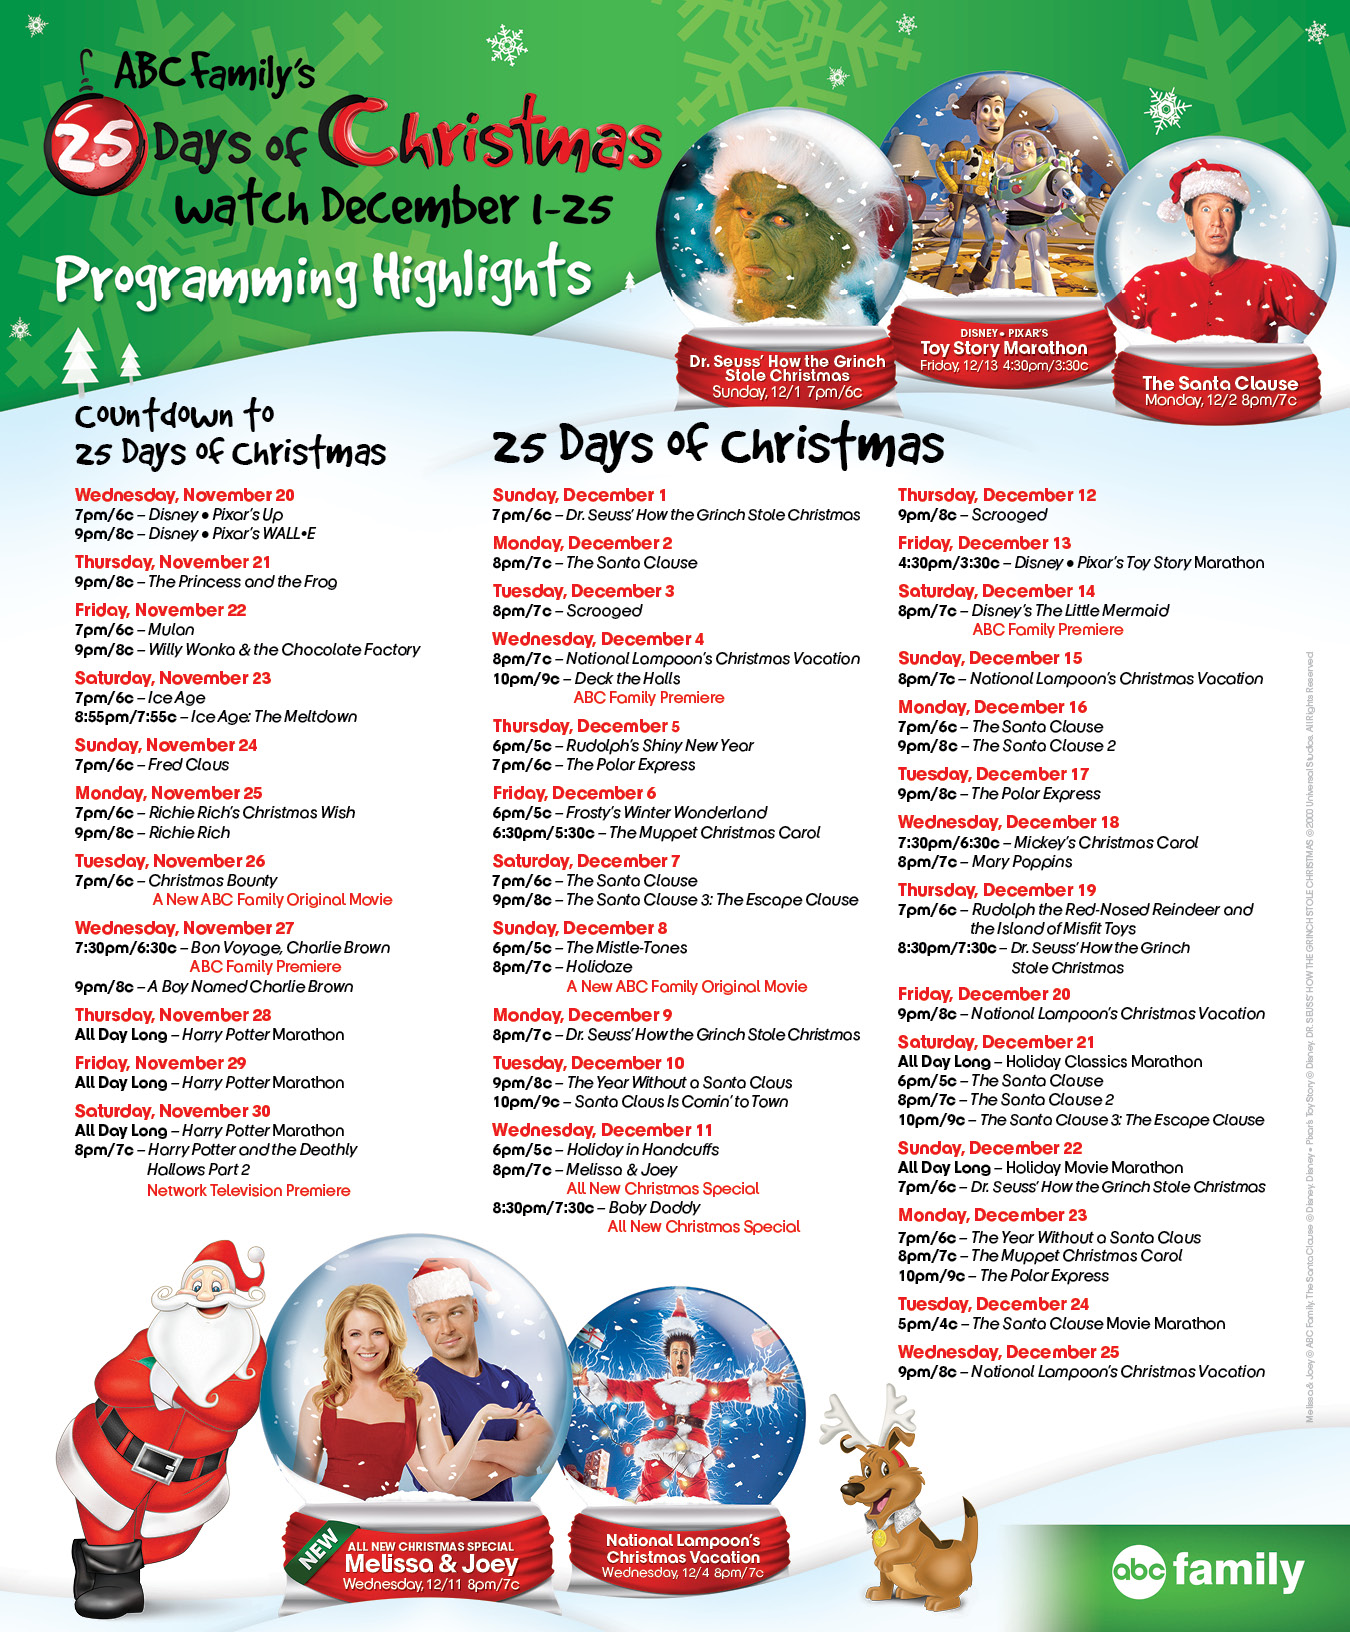 abc family 25 days of christmas shows to watch - 2014 Christmas Shows On Tv